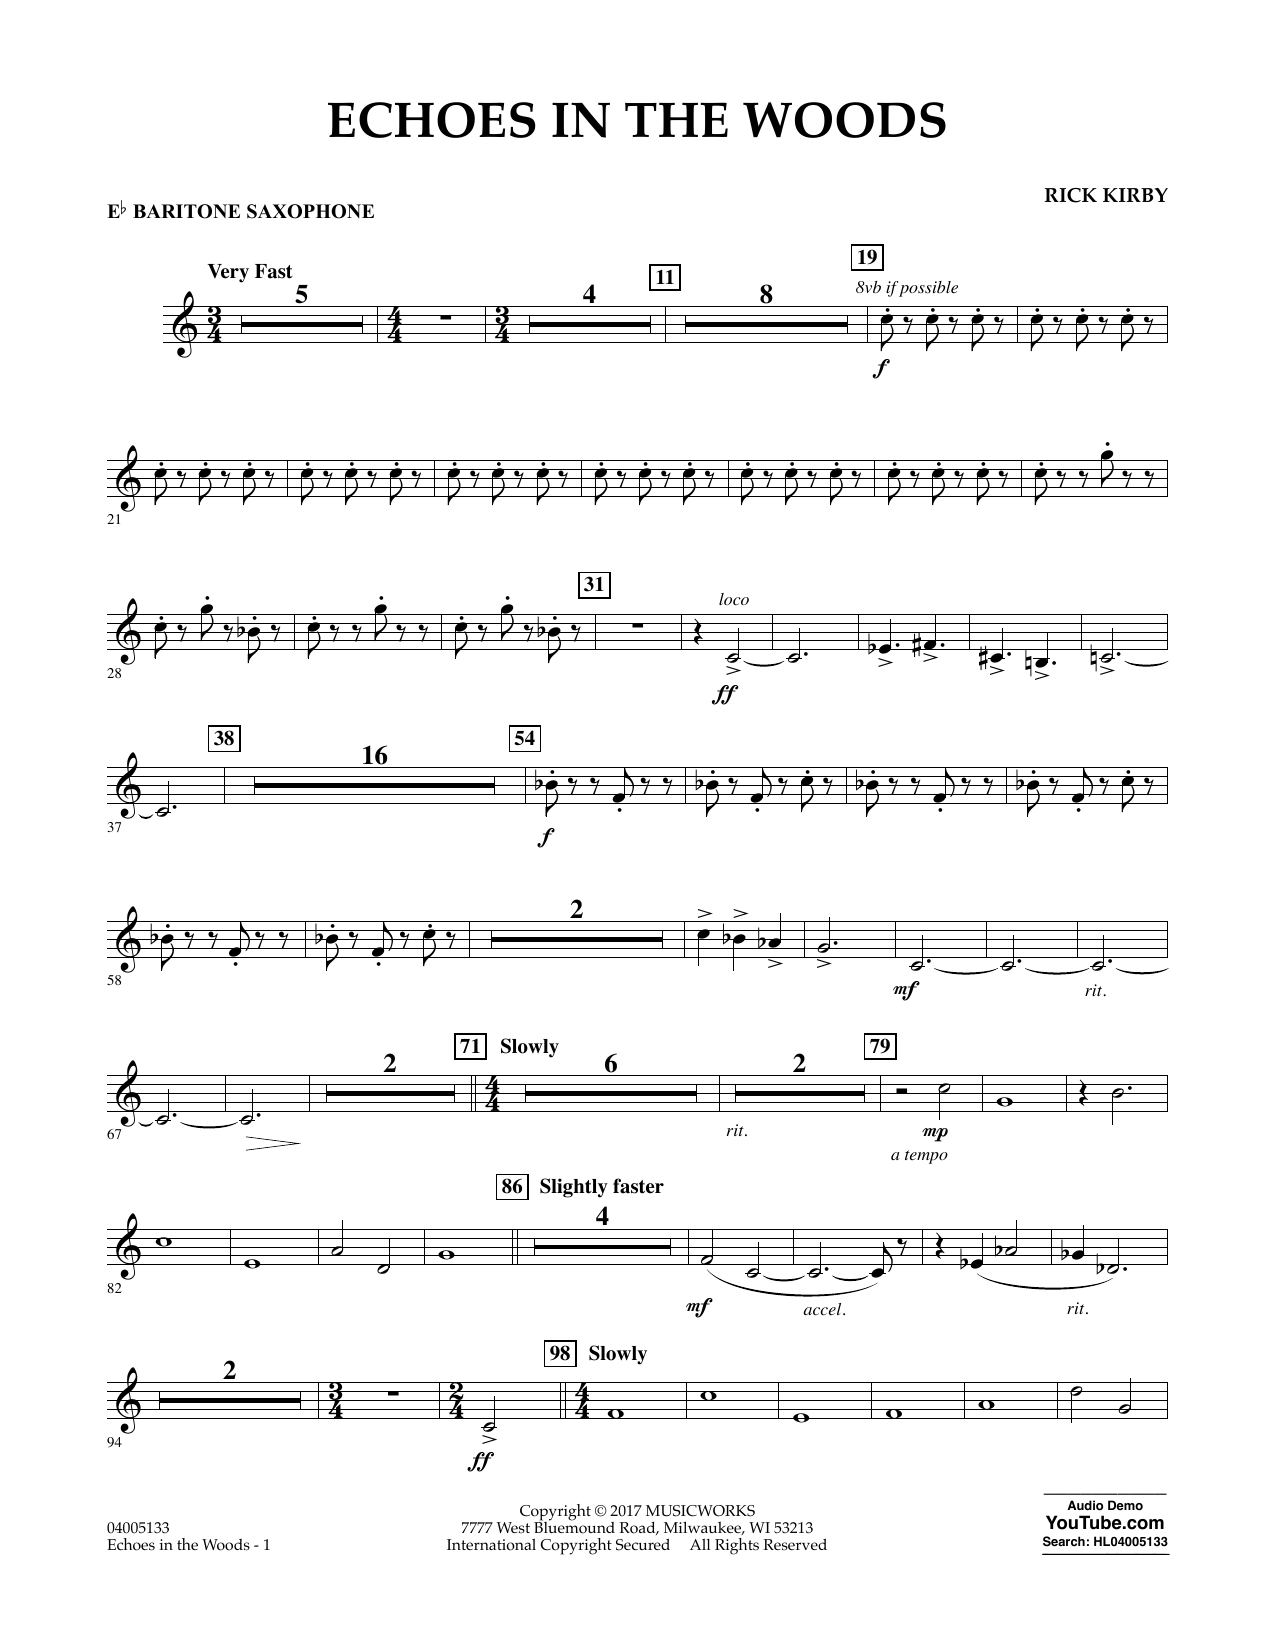 Rick Kirby Echoes in the Woods - Eb Baritone Saxophone sheet music notes and chords. Download Printable PDF.